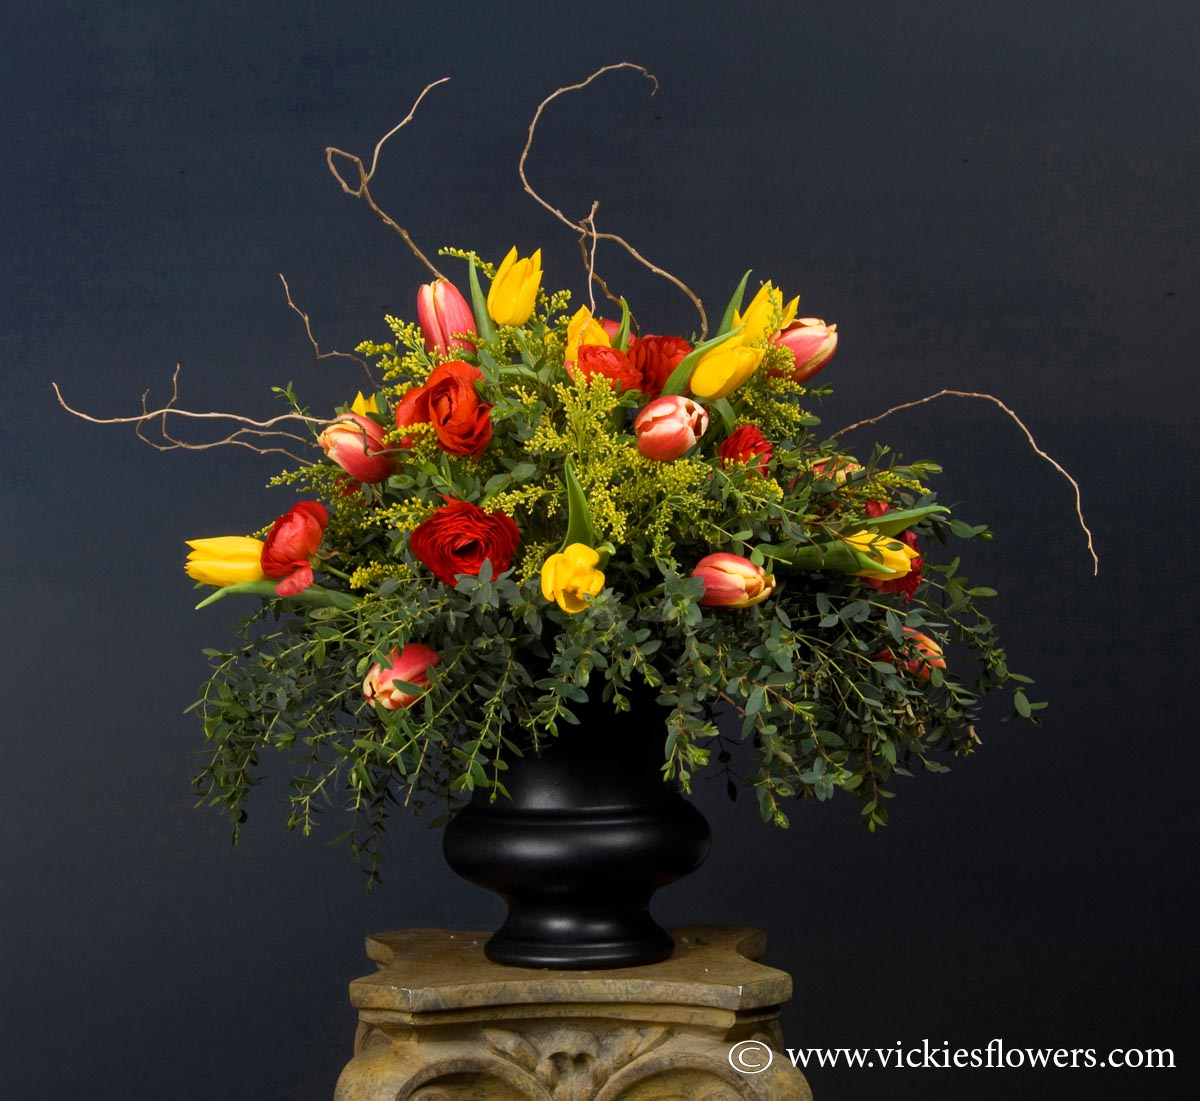 Sympathy flowers and plants vickies flowers brighton co florist funeral sympathy flowers 024 65 plus tax and delivery asian inspired design with red roses yellow football mums wax flower curly willow and pussy izmirmasajfo Images